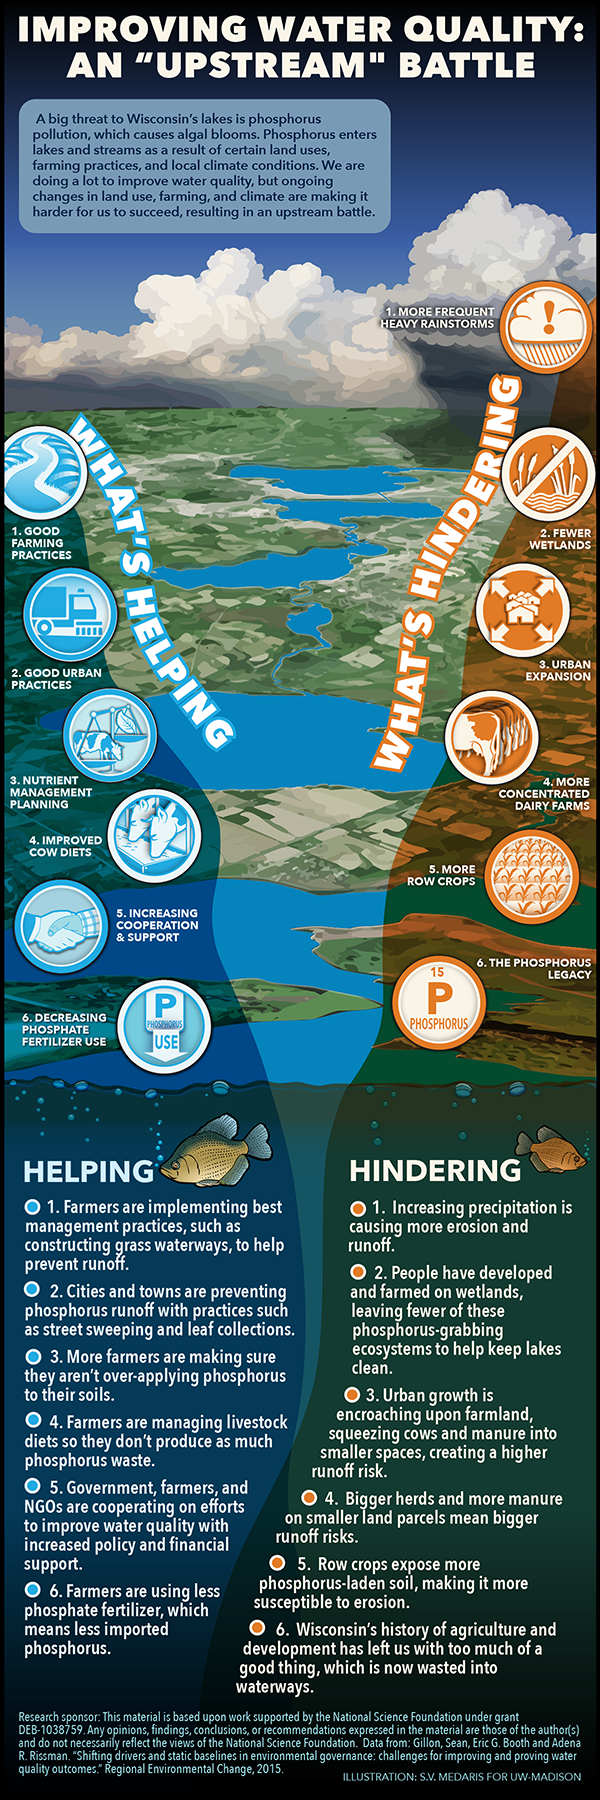 Improving water quality -- what works and what hurts